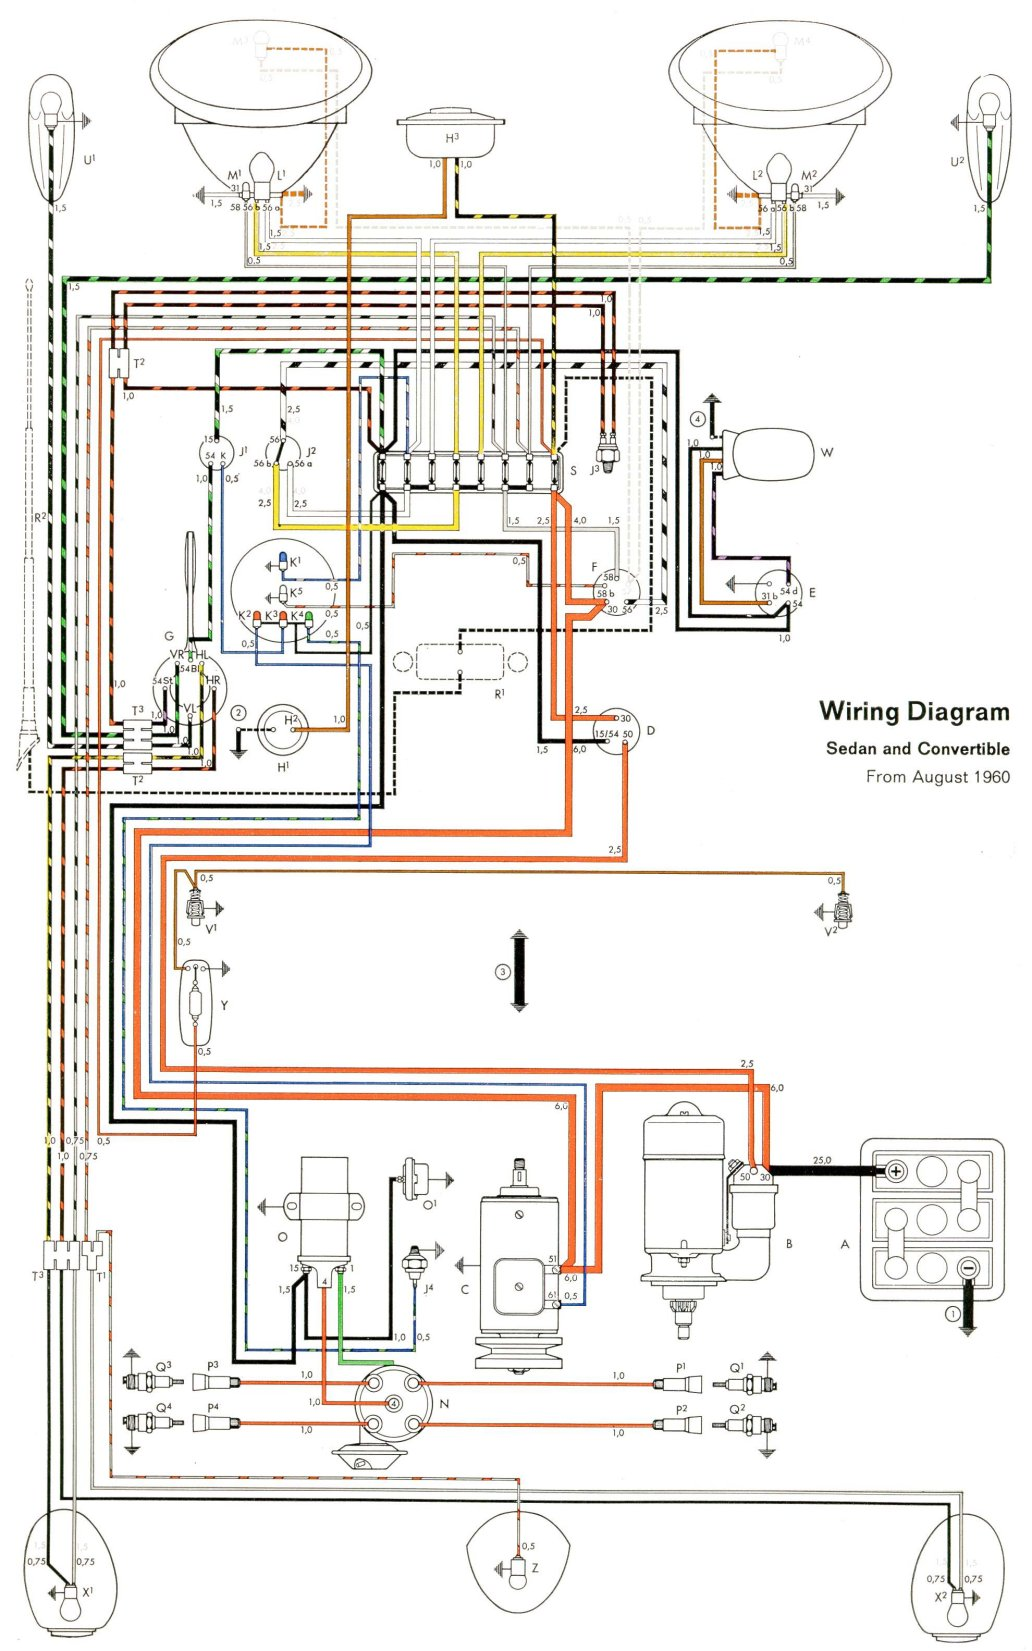 thesamba com type 1 wiring diagrams rh thesamba com vw wiring diagrams free downloads vw wiring diagrams online